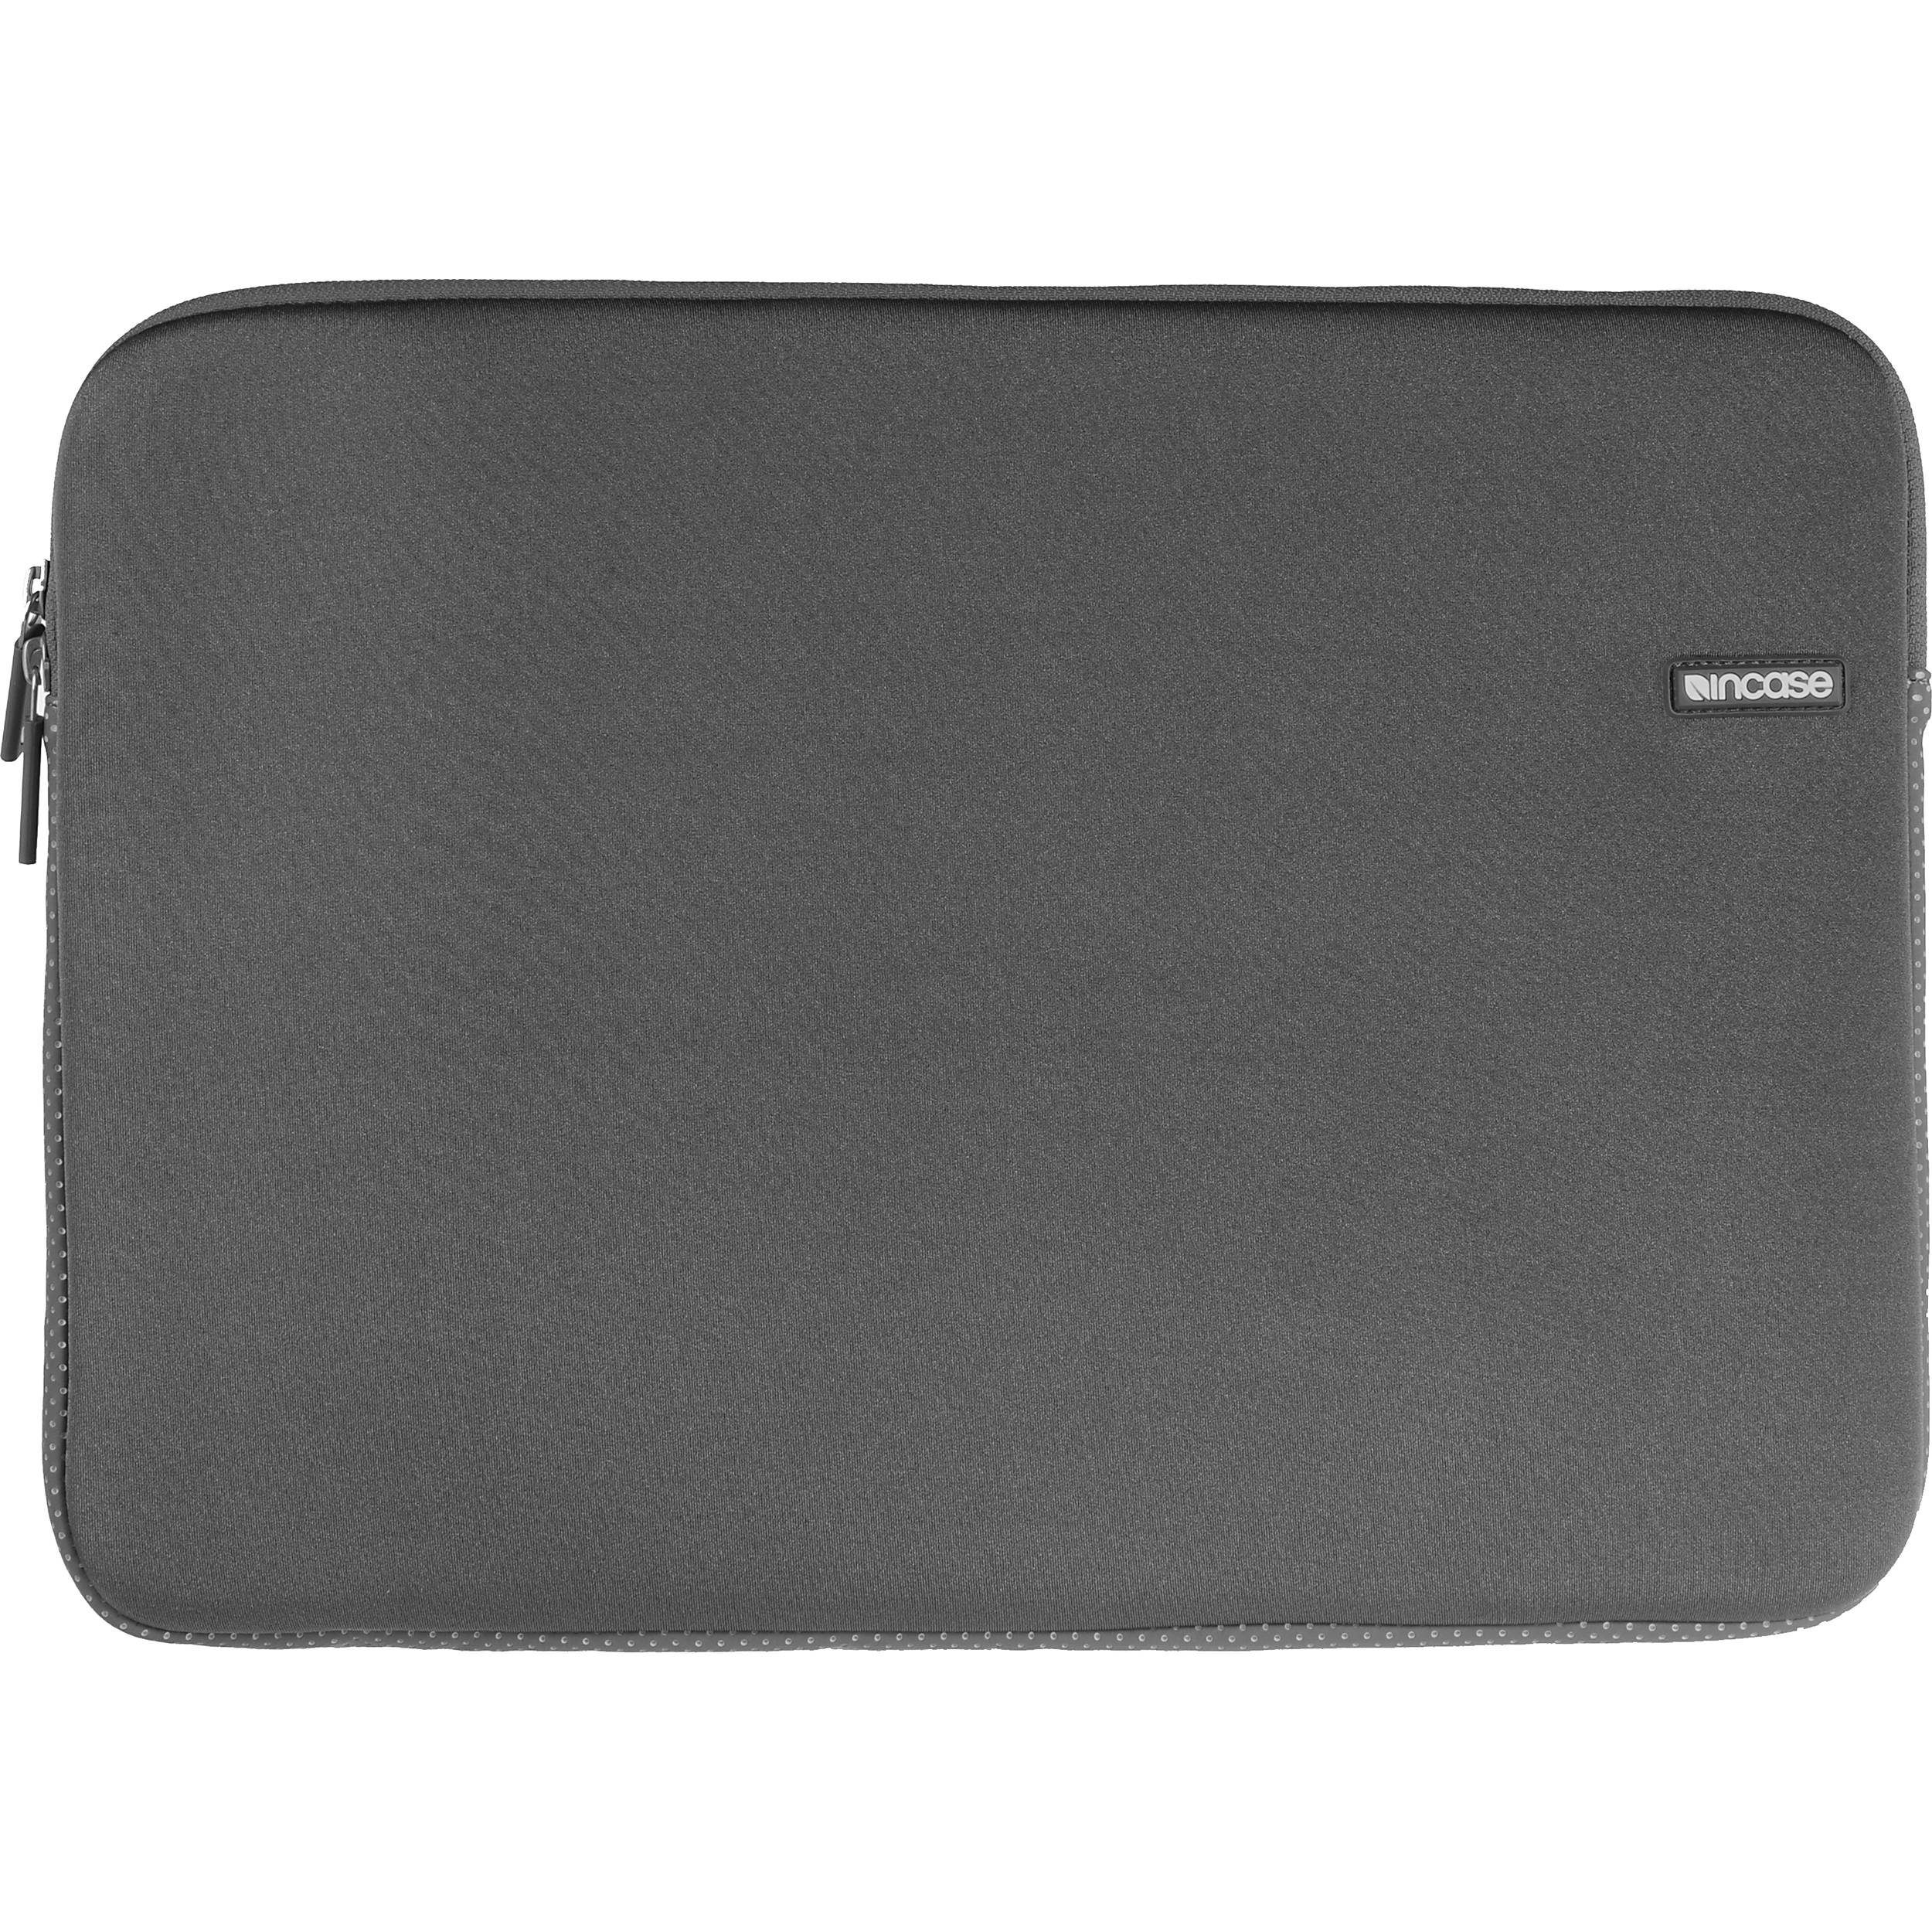 low priced 87033 4e357 Incase Designs Corp CL57439 Neoprene Sleeve for MacBook Pro 17